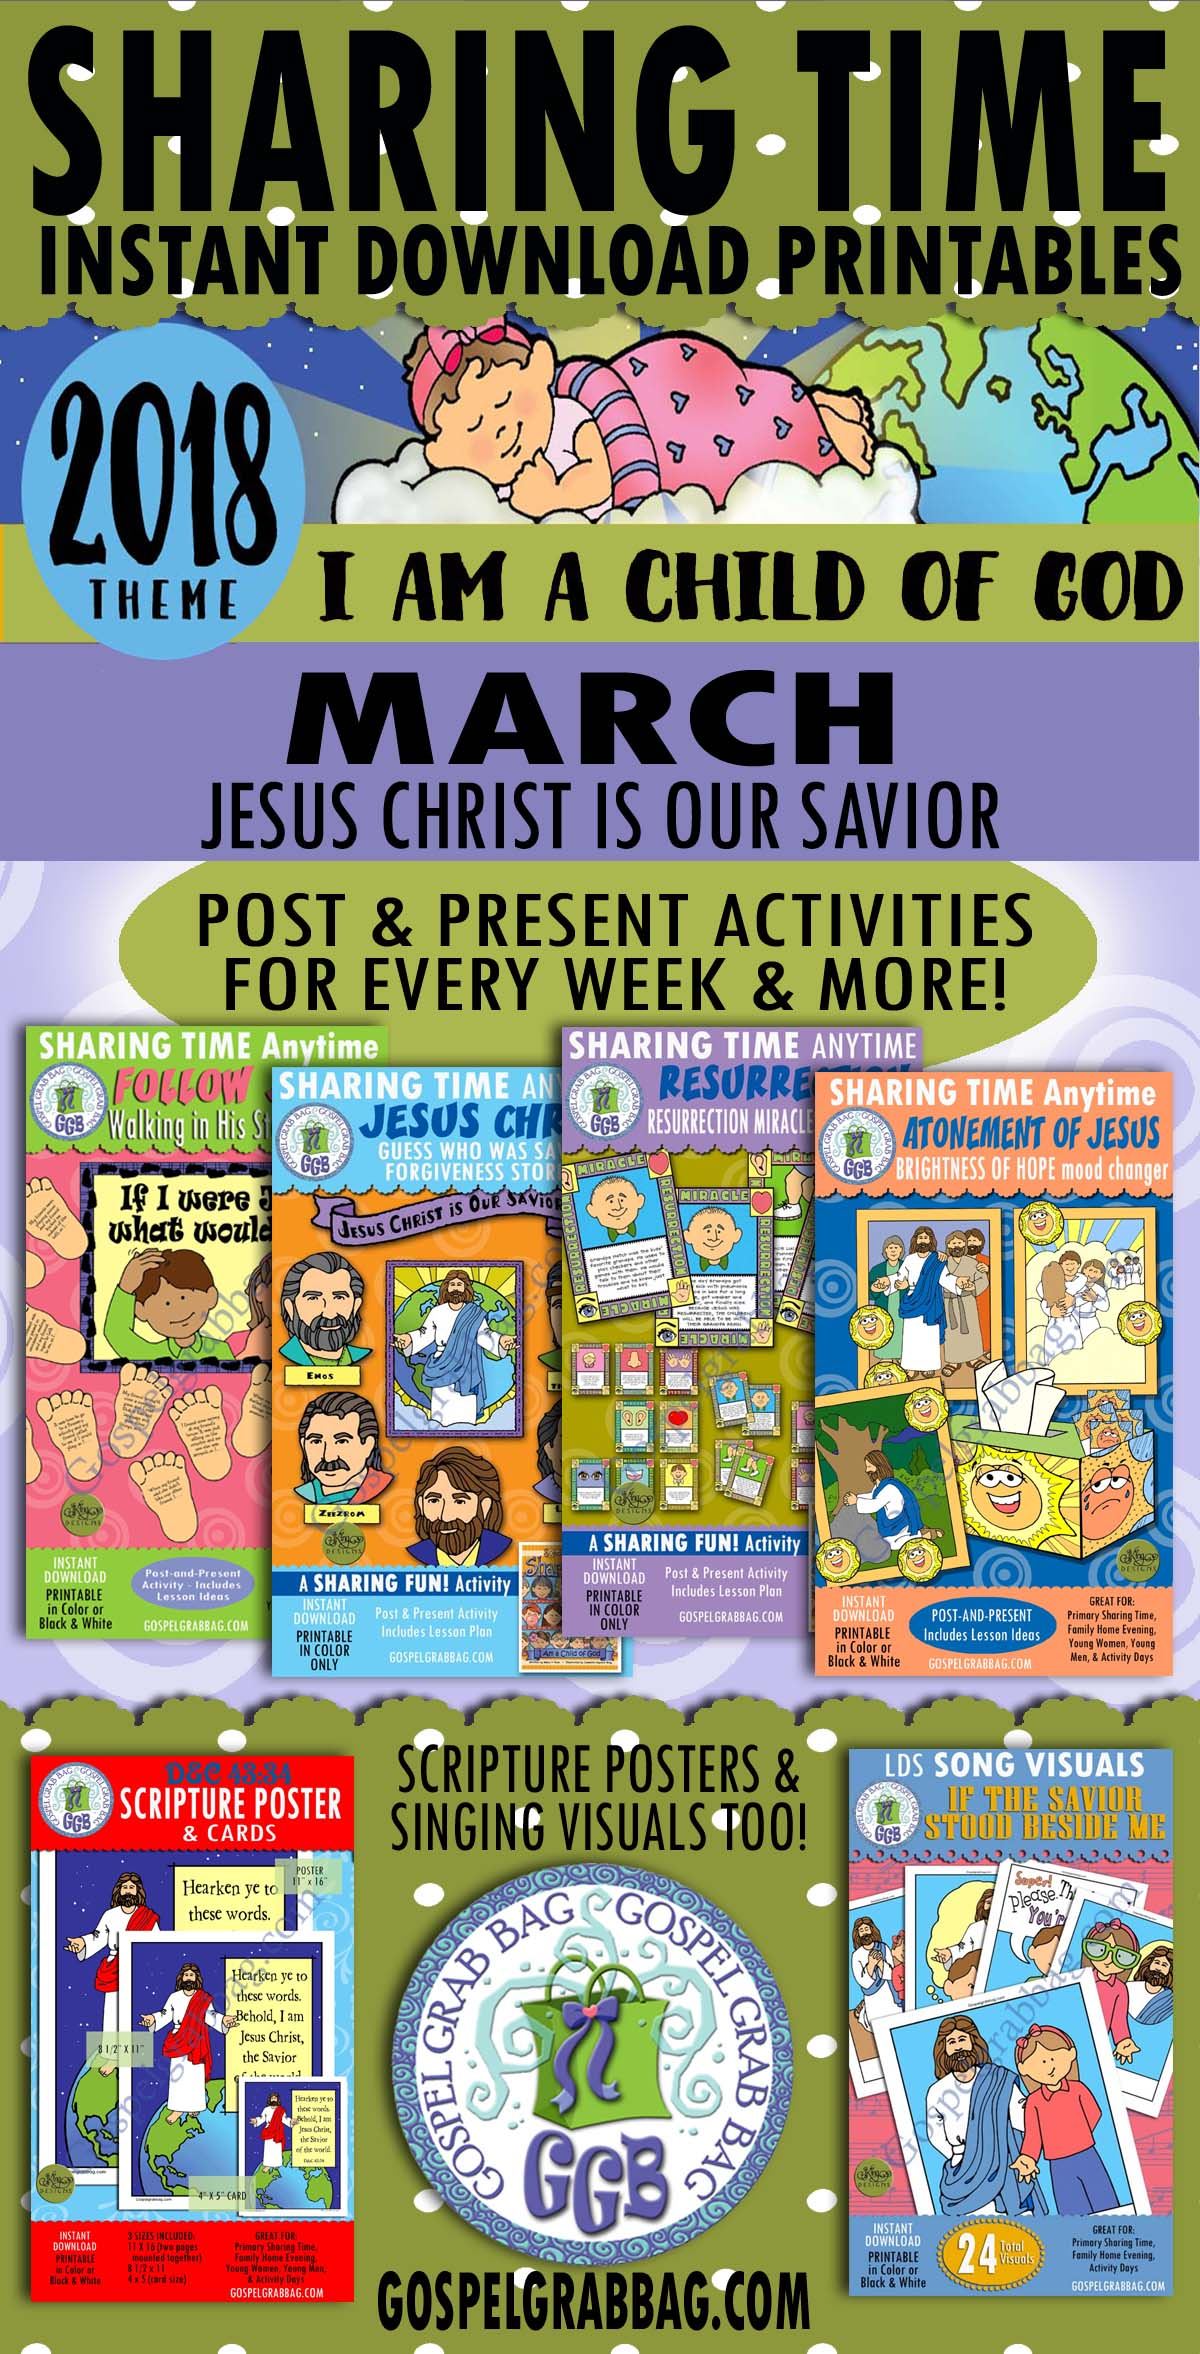 "2018 Primary Sharing Time Activities - MARCH Theme: ""Jesus Christ Is Our Savior"", Primary Sharing Time, GospelGrabBag.com"